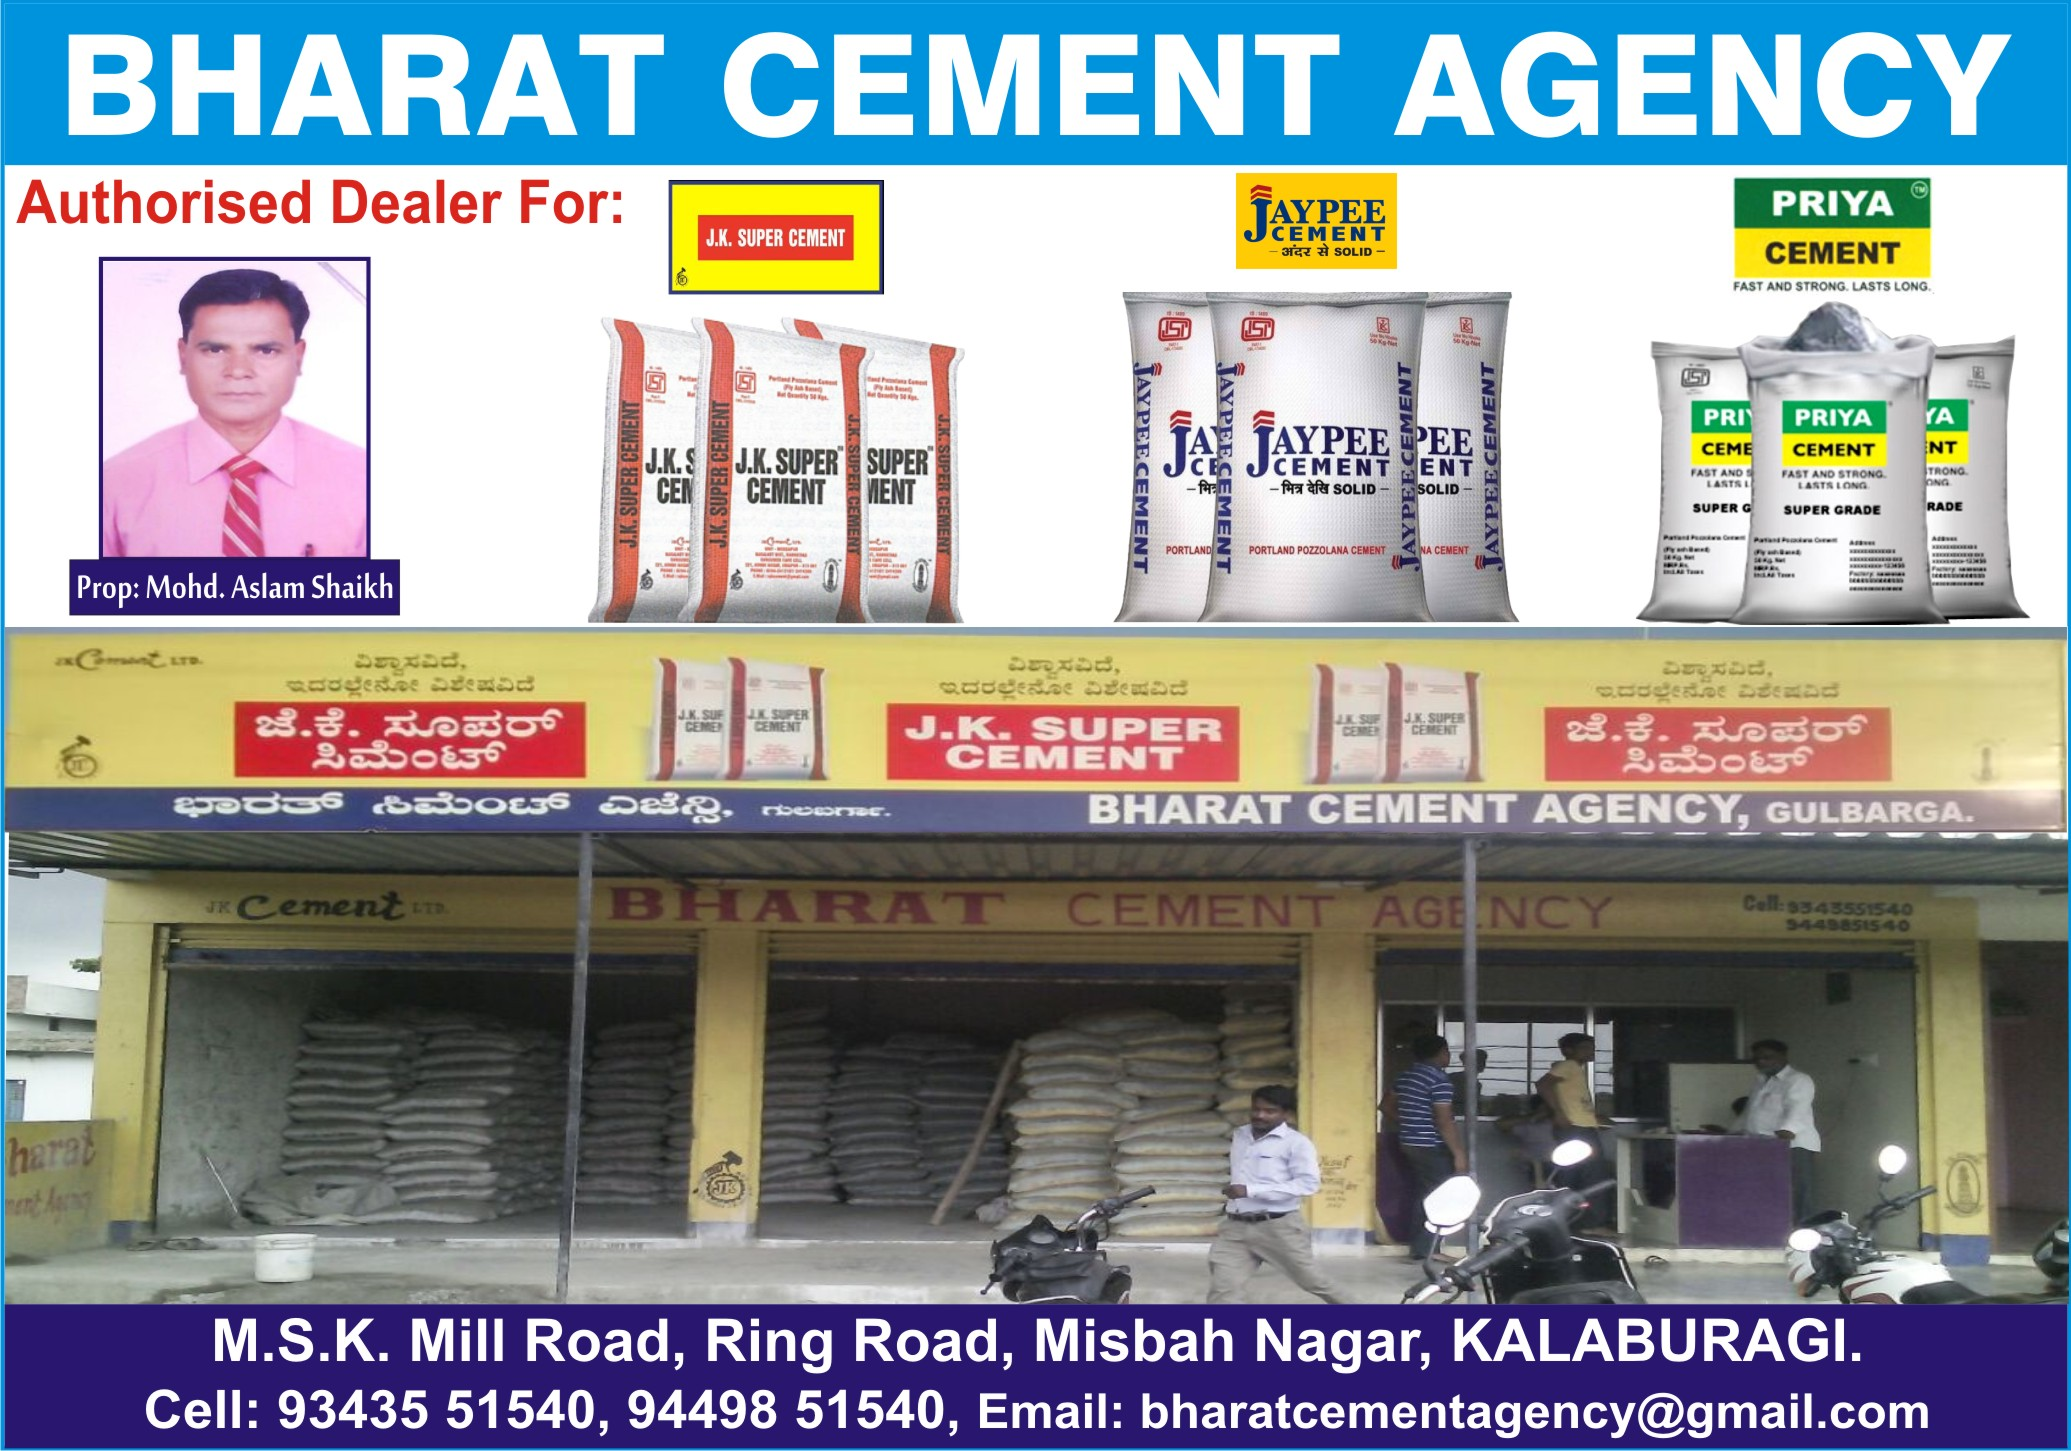 Bharat Cement Agency